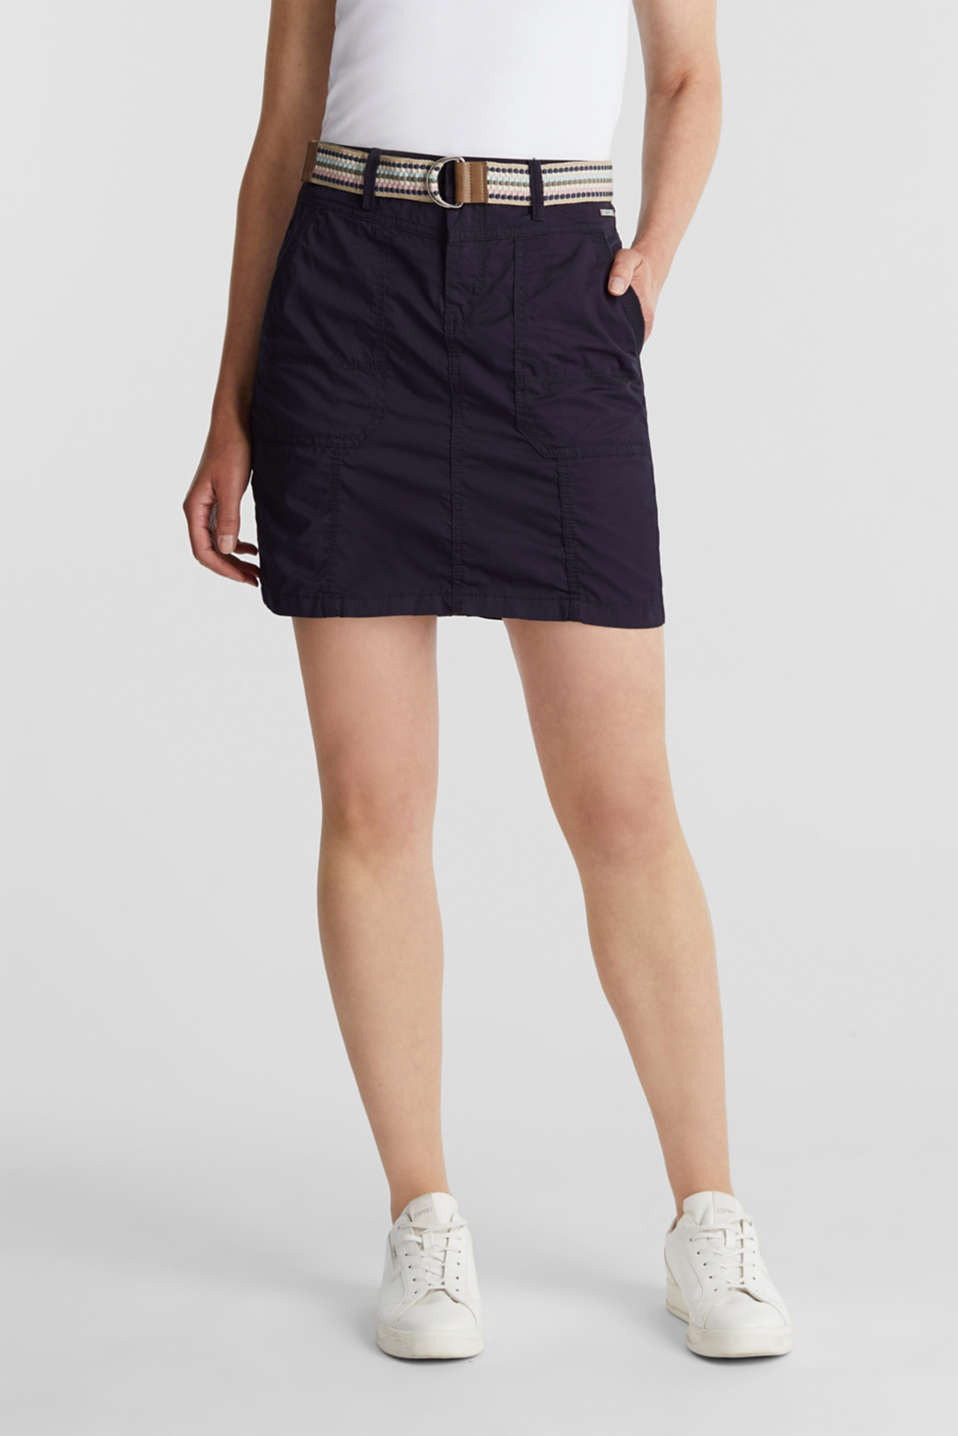 Esprit - Skirt with belt, 100% organic cotton